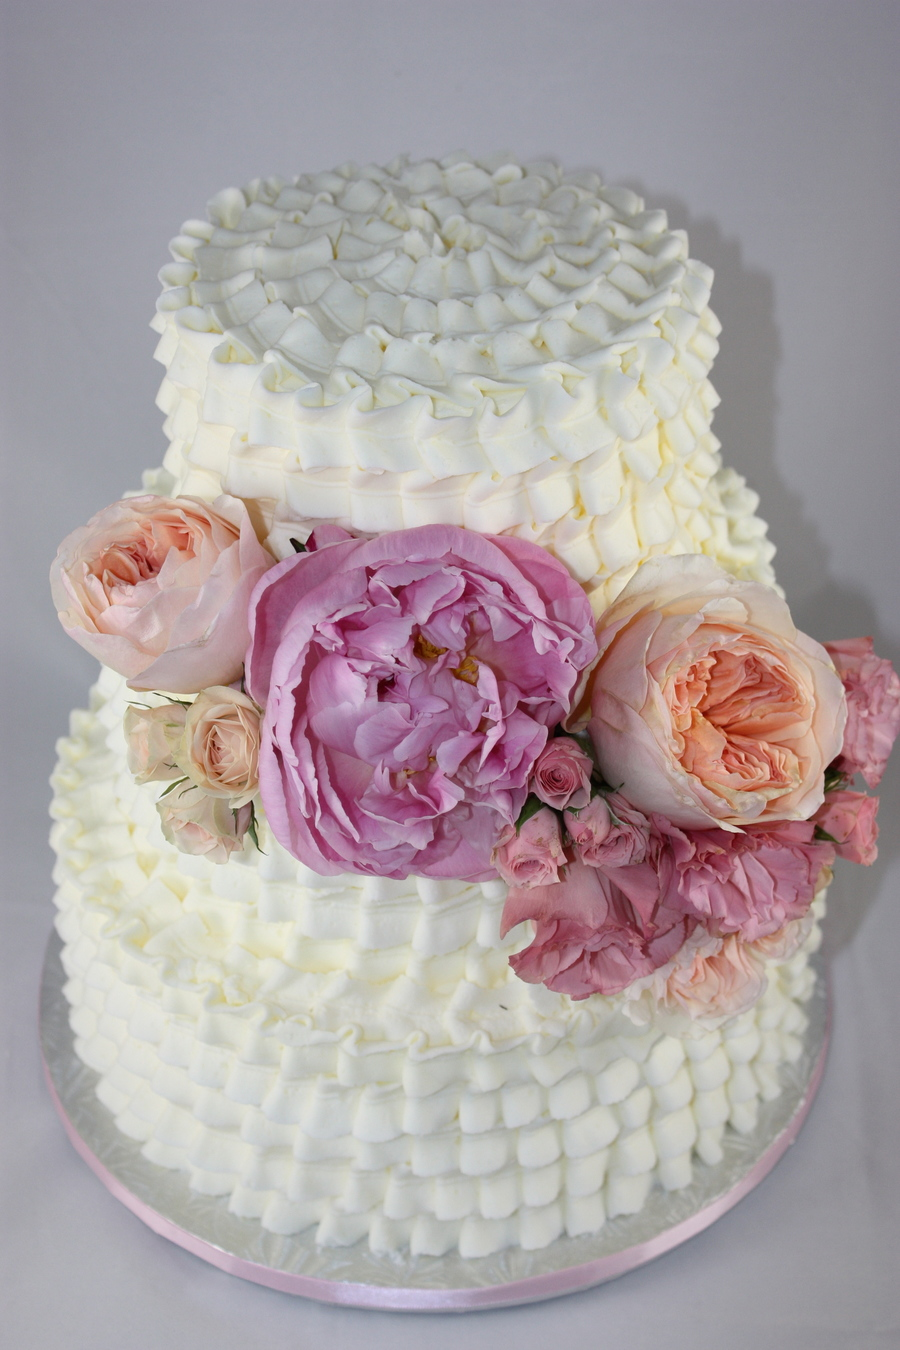 White Ruffle Buttercream Cake With Fresh Peony And Garden Roses Classic Creations Floral Design This Was A Display Cake For A Bridal Expo on Cake Central